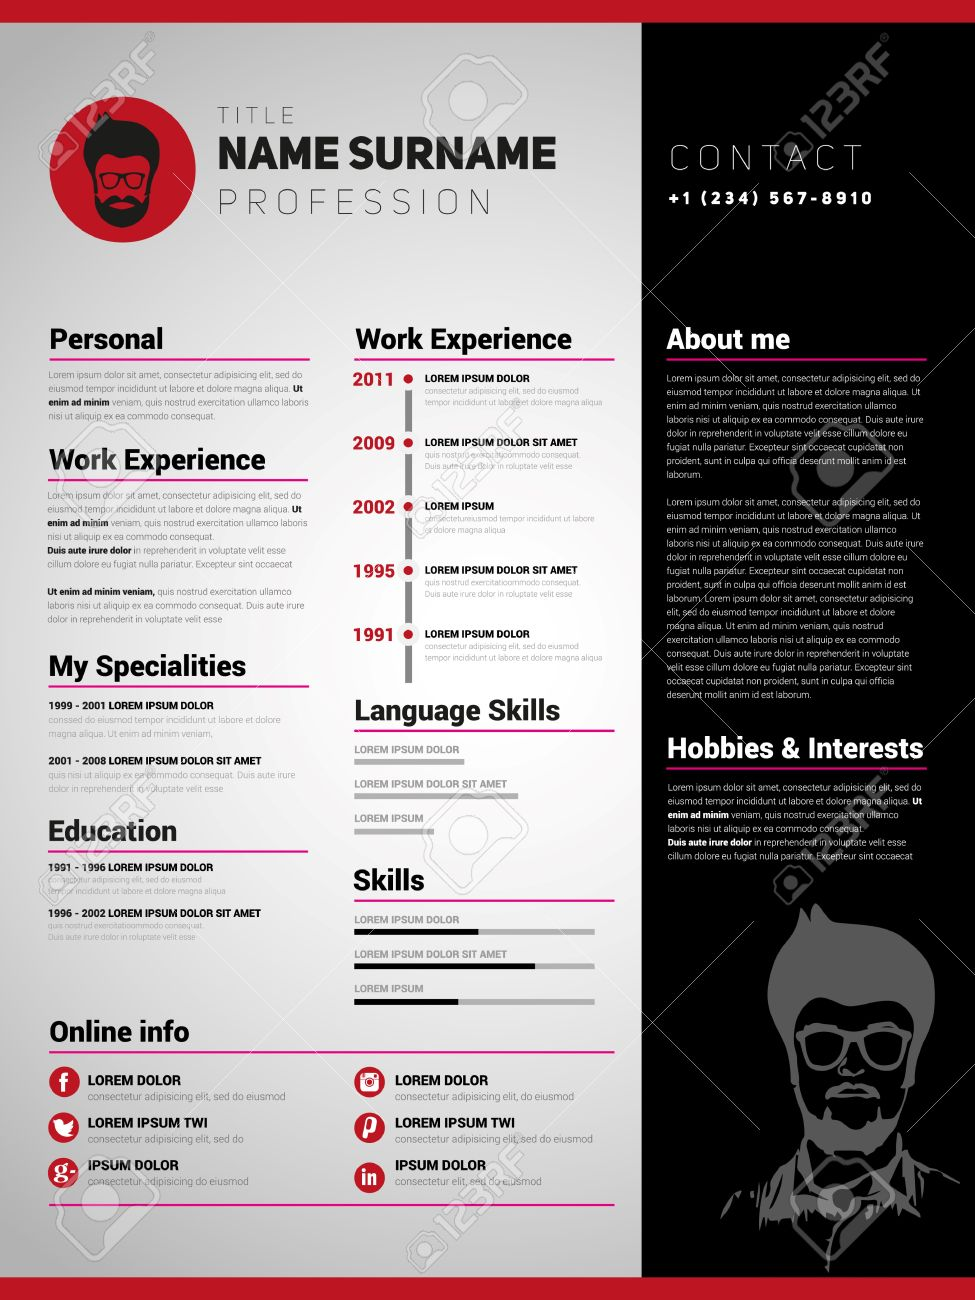 resume template minimalist cv vector design stock vector 44832069 - Minimalist Resume Template